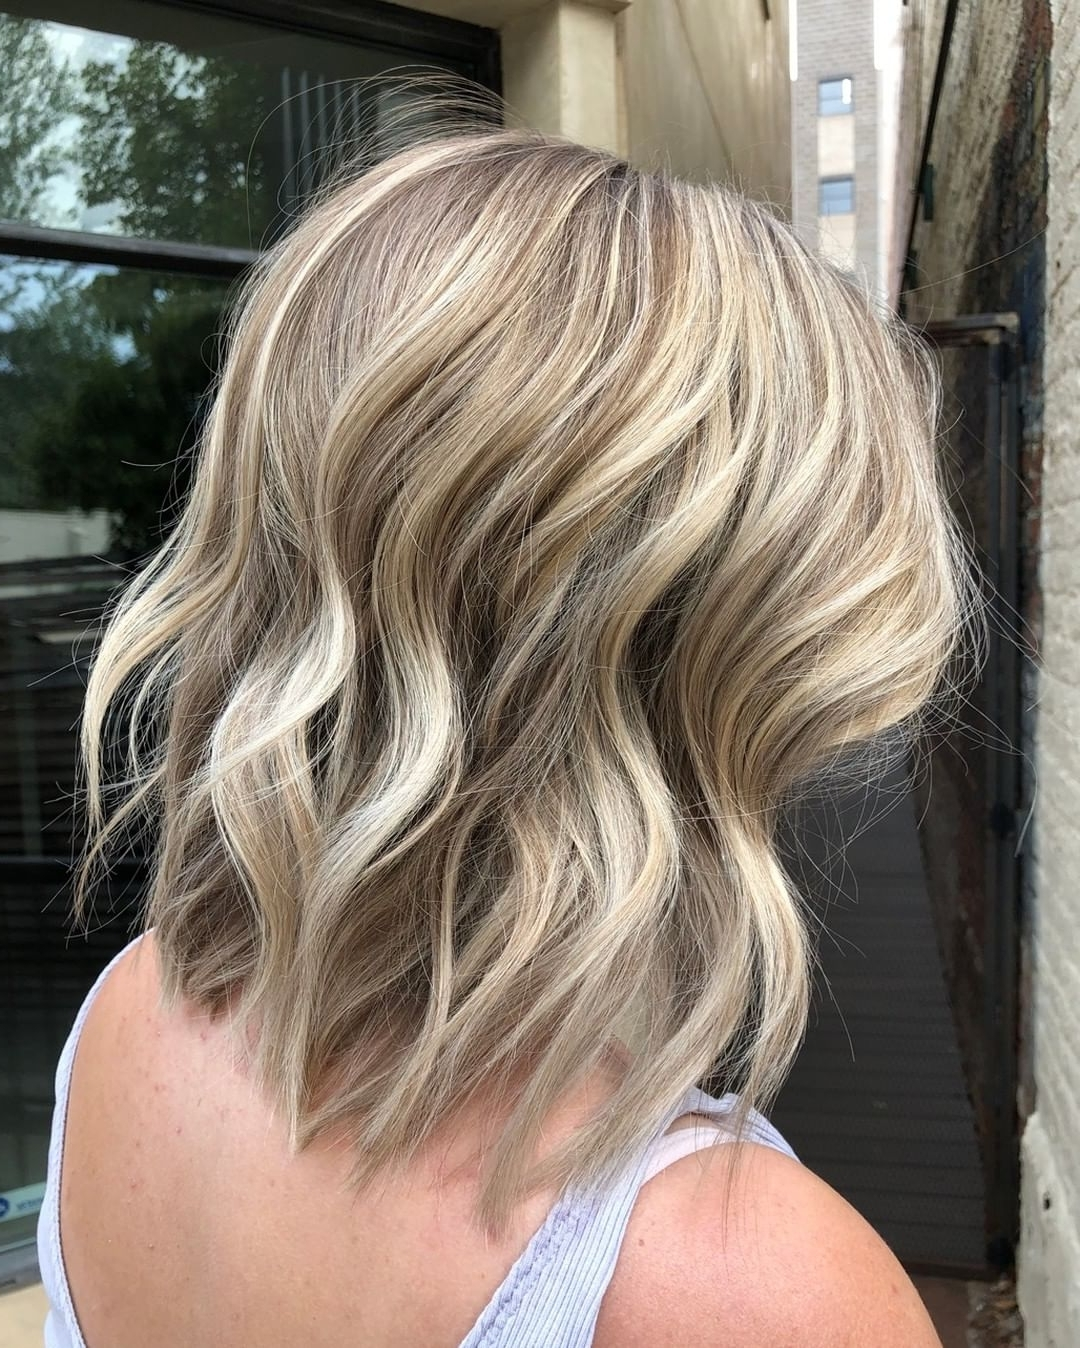 10 Low Maintenance Medium Length Hairstyles 2021 Best 10+ Stylish Low Maintenance Shoulder Length Thick Hair Medium Length Hairstyles